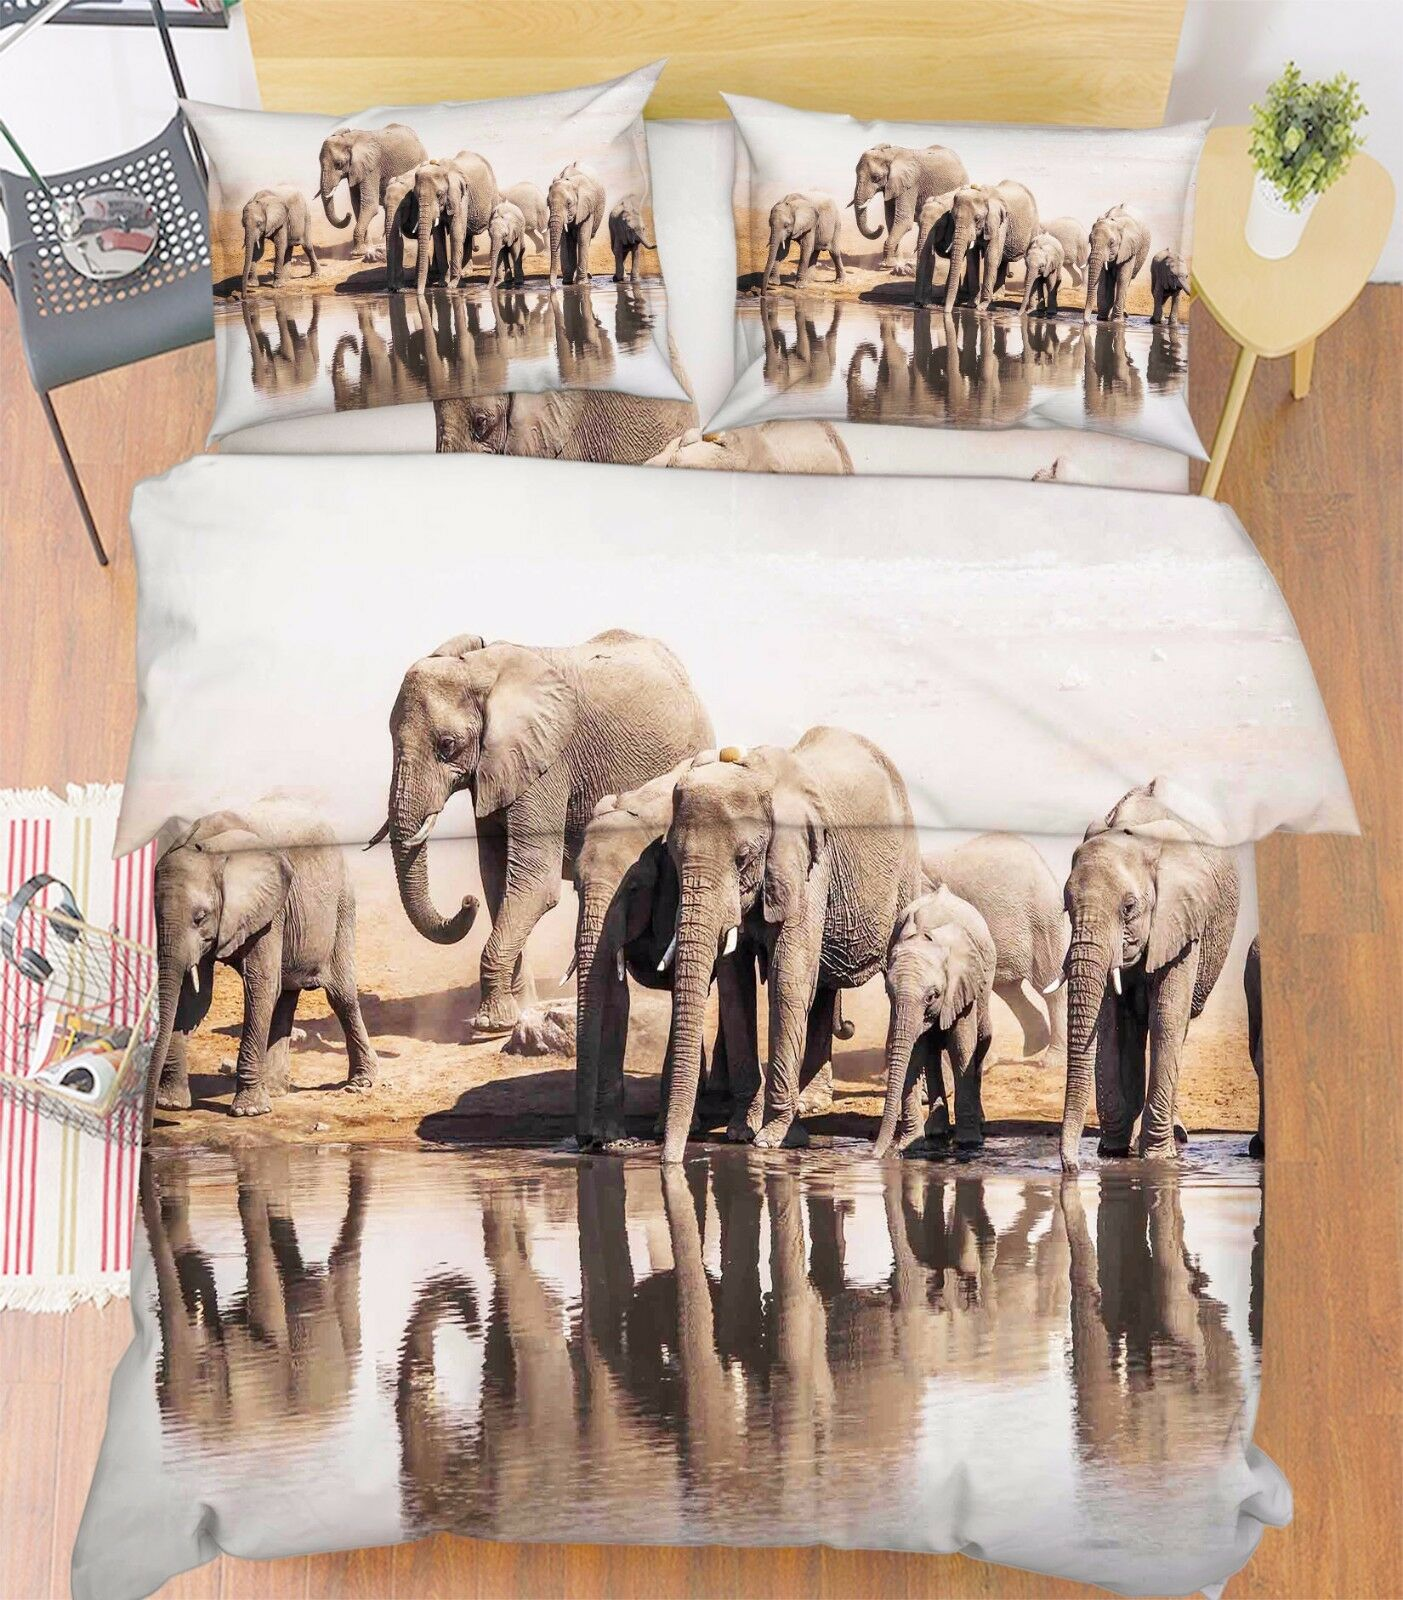 3D Elephants 017 Bed Pillowcases Quilt Duvet Cover Set Single Queen King Größe AU